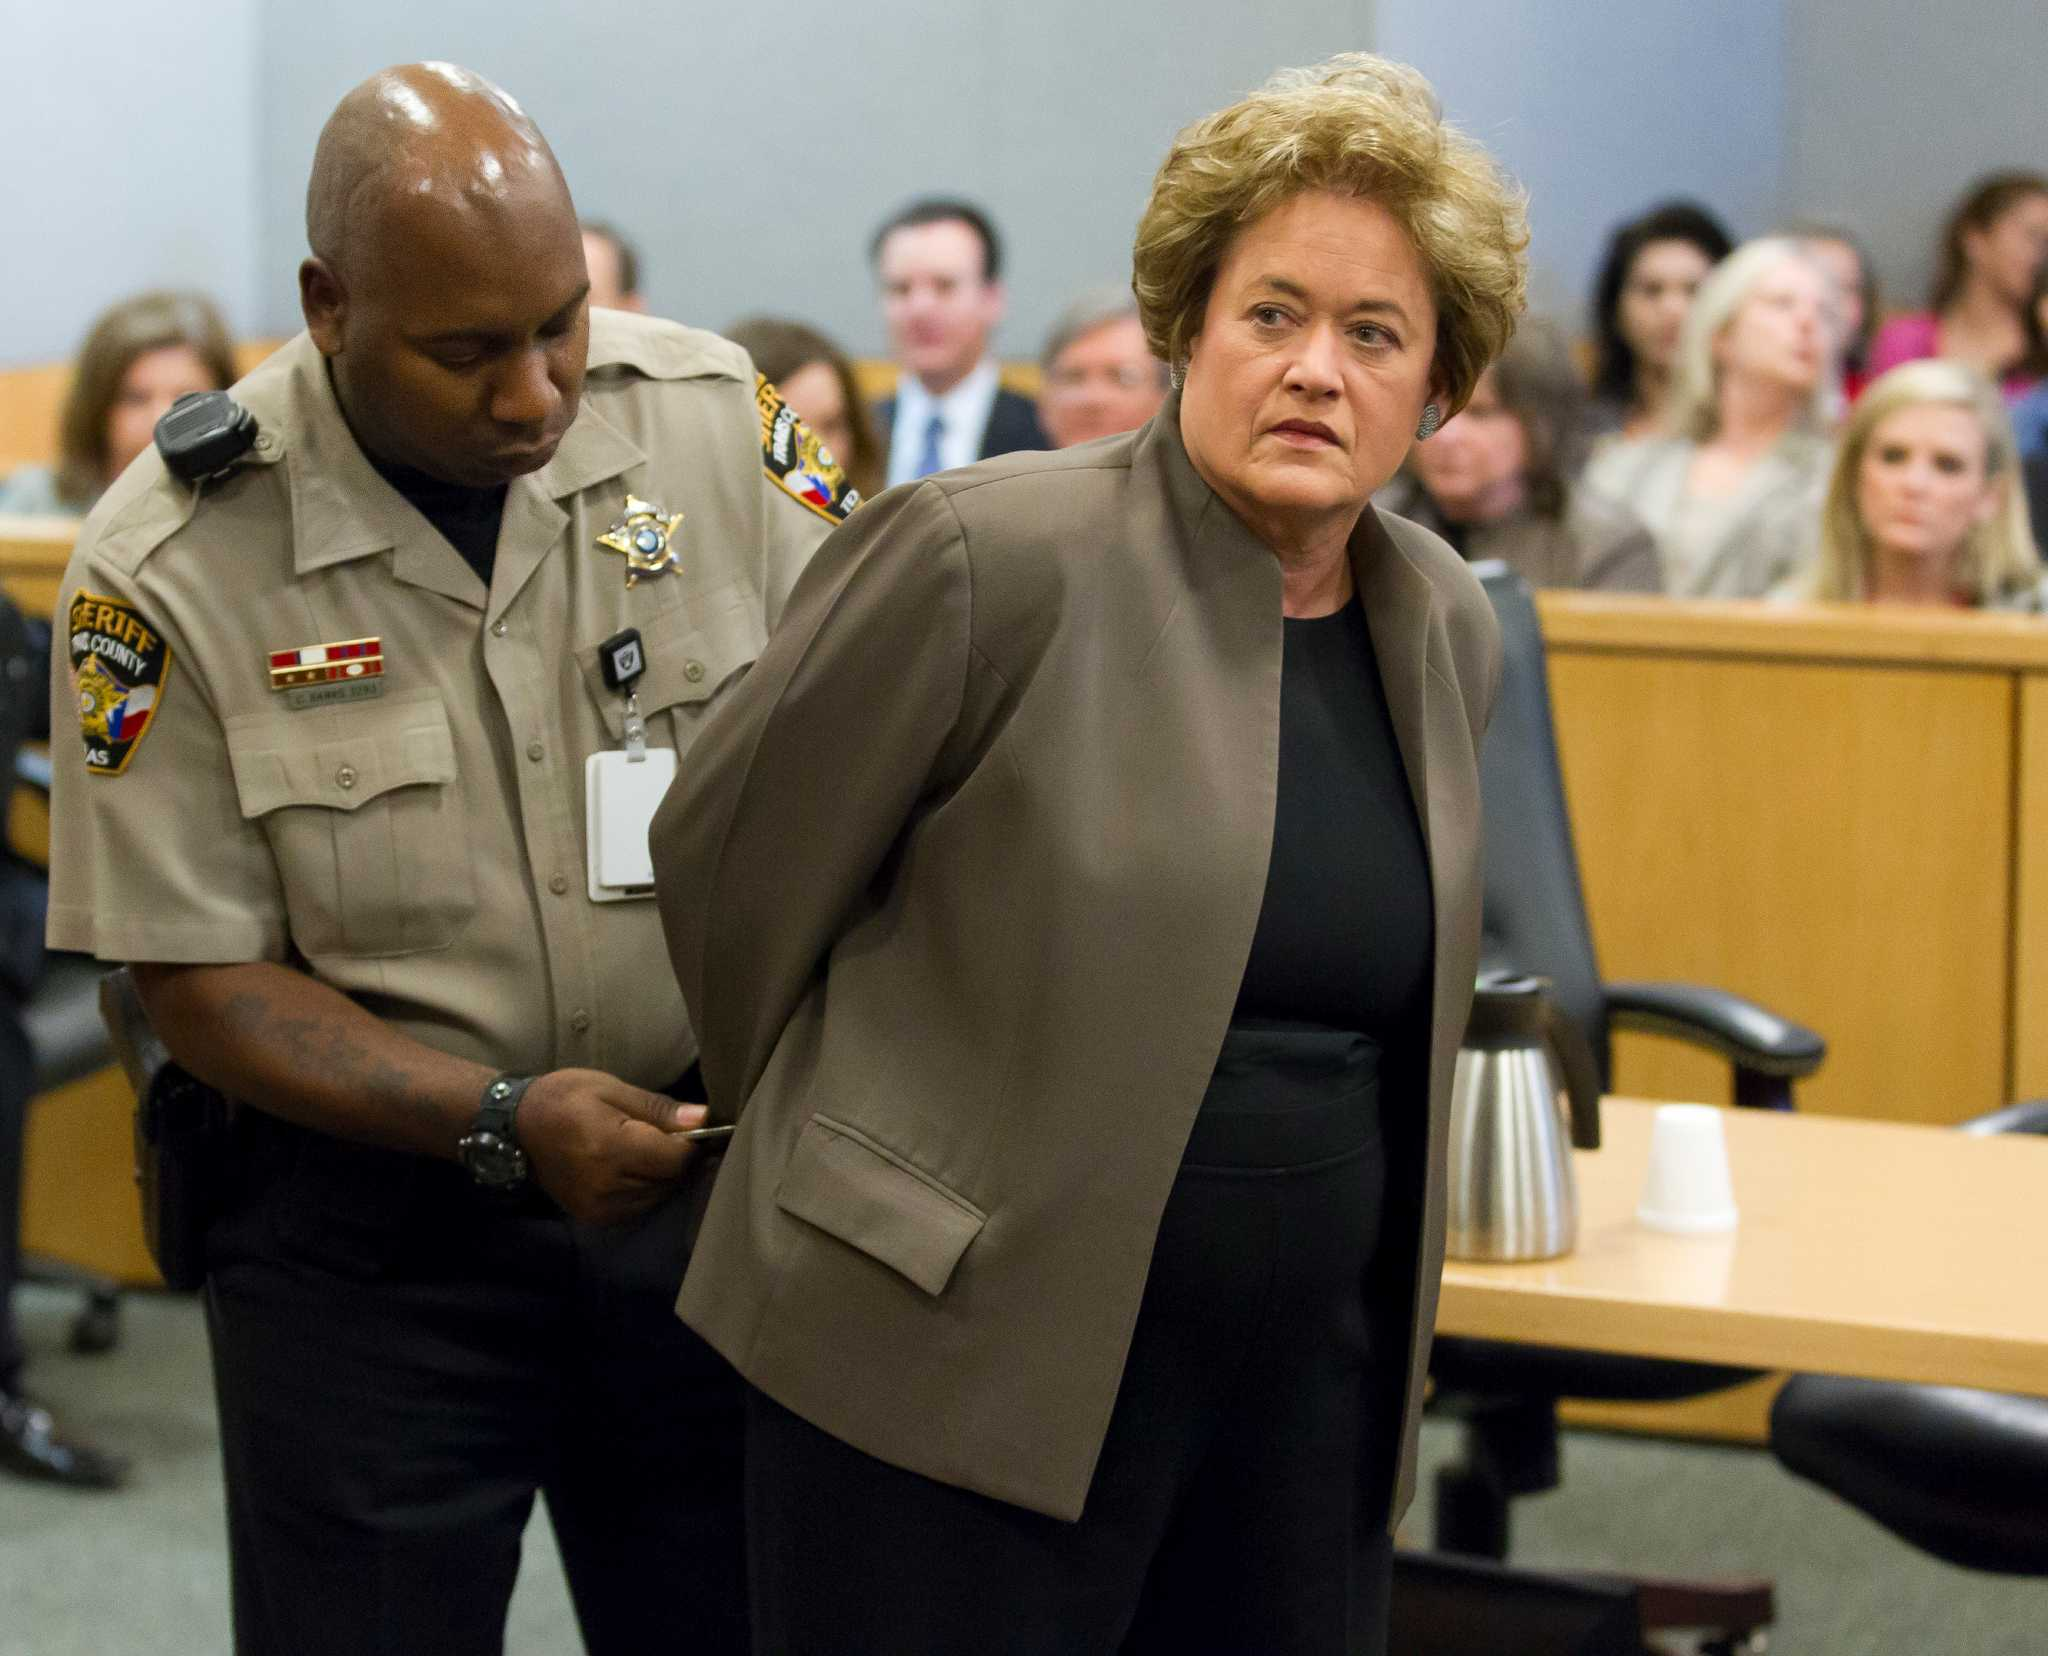 Perry Aides Offered Lehmberg A Job For Resignation San